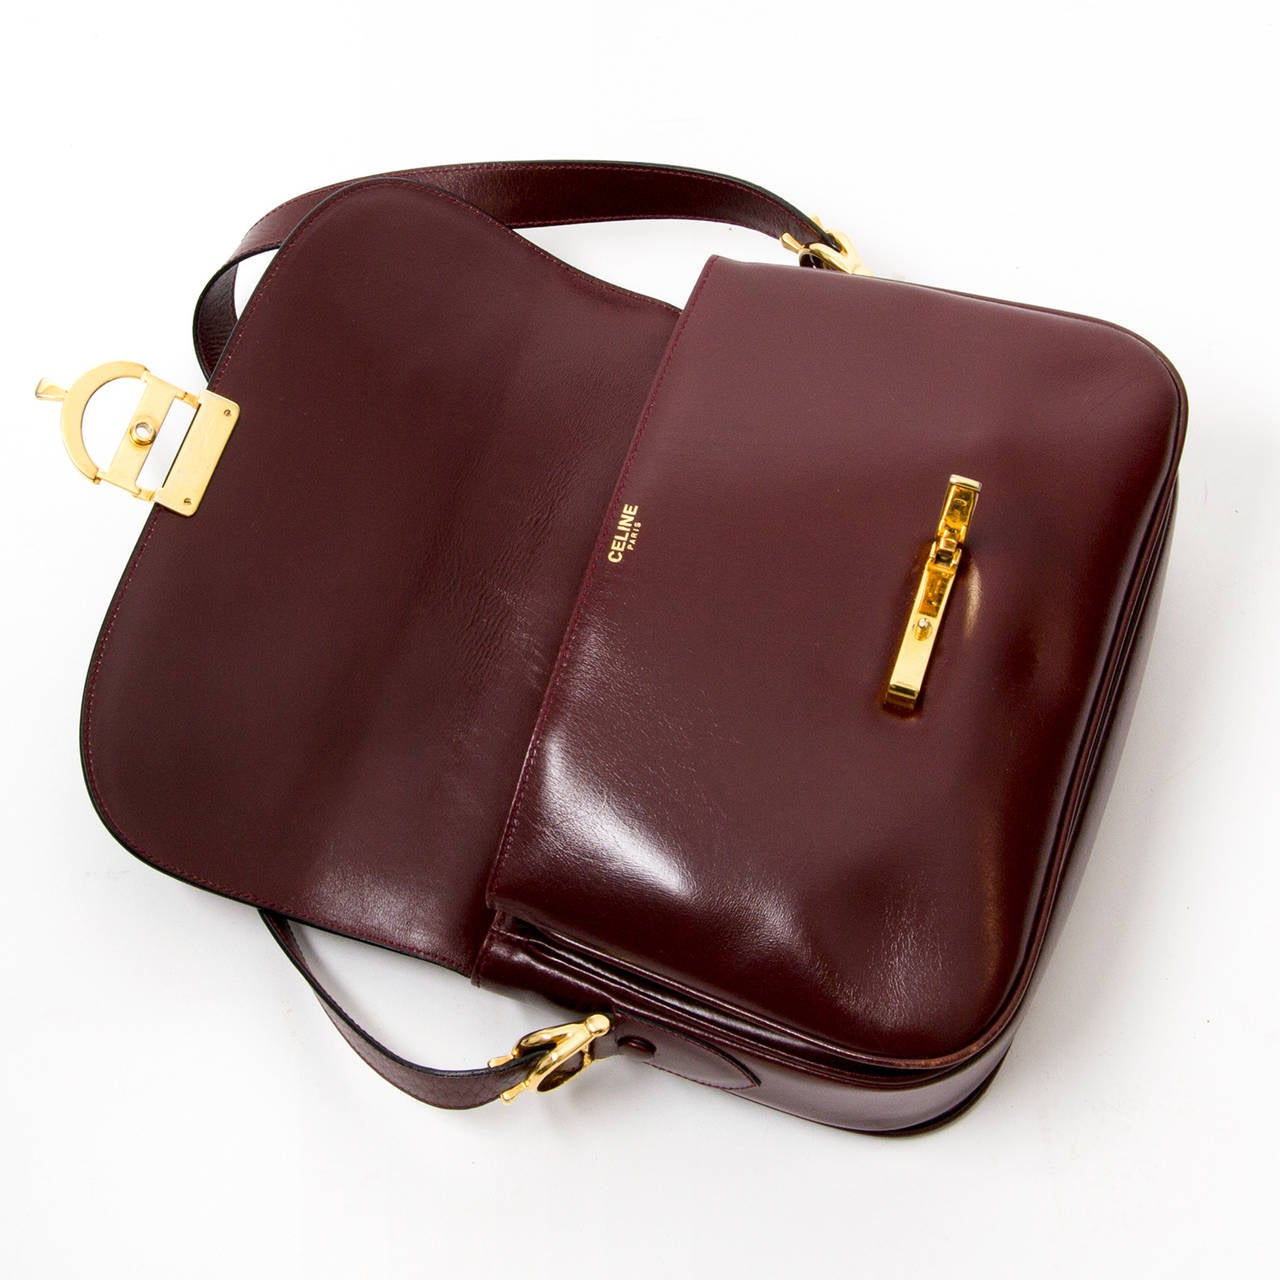 772f57c986 Women s Céline Vintage Burgundy Shoulder Bag For Sale